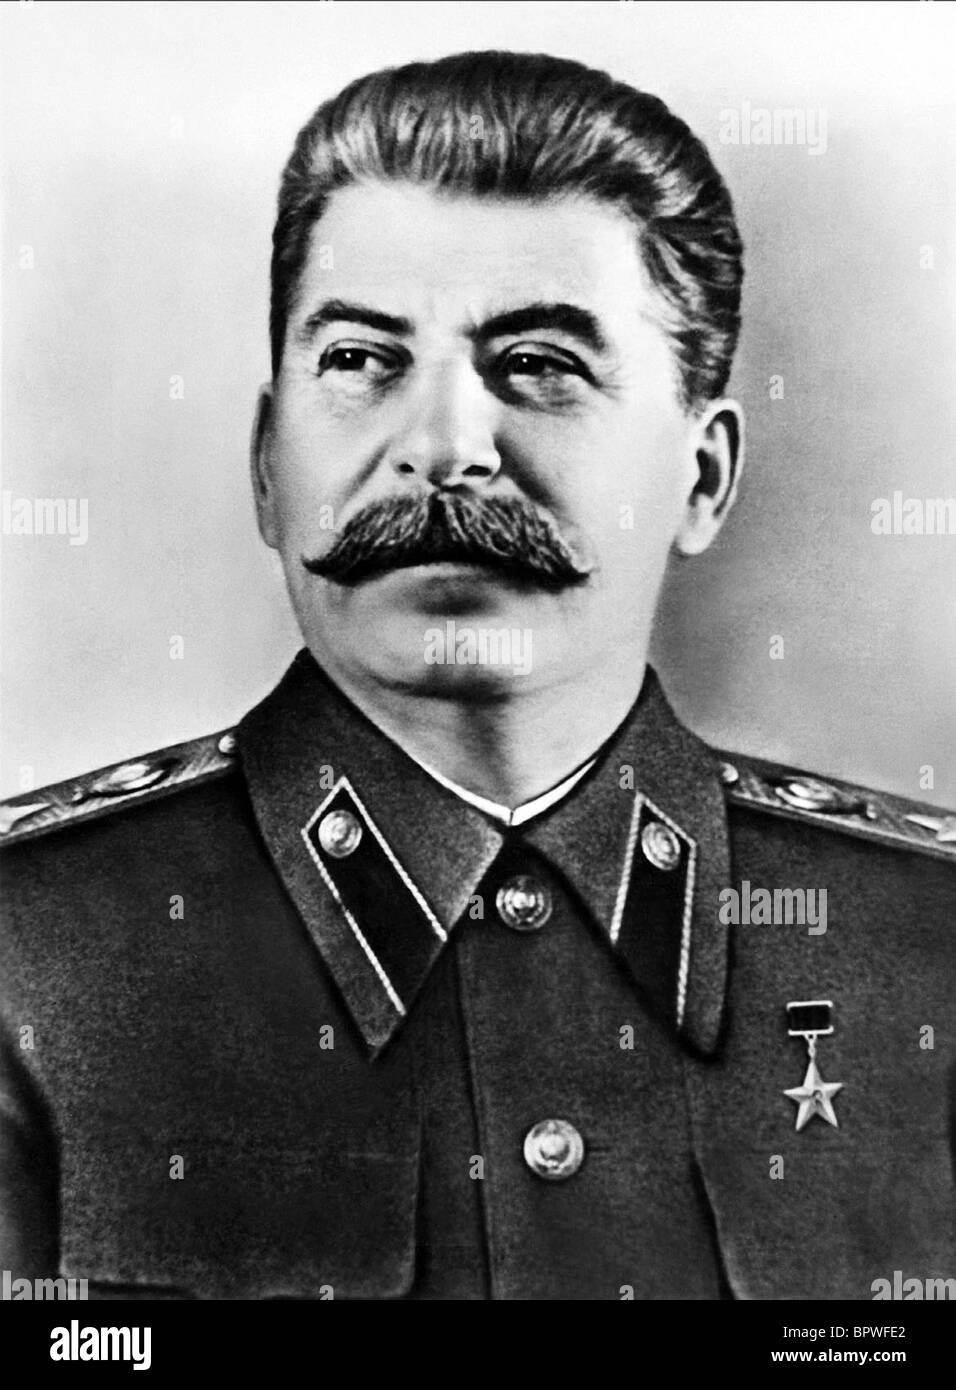 a biography of joseph stalin the leader of the communist party of the soviet union Czechoslovakia's political decisions were dictated by the soviet union, and the   soviet union premier joseph stalin directed the czechoslovak communists to  carry out  two notable trials involved democratic politician and resistance  leader  accused of high treason, the communist party claimed slánský was a  titoist.